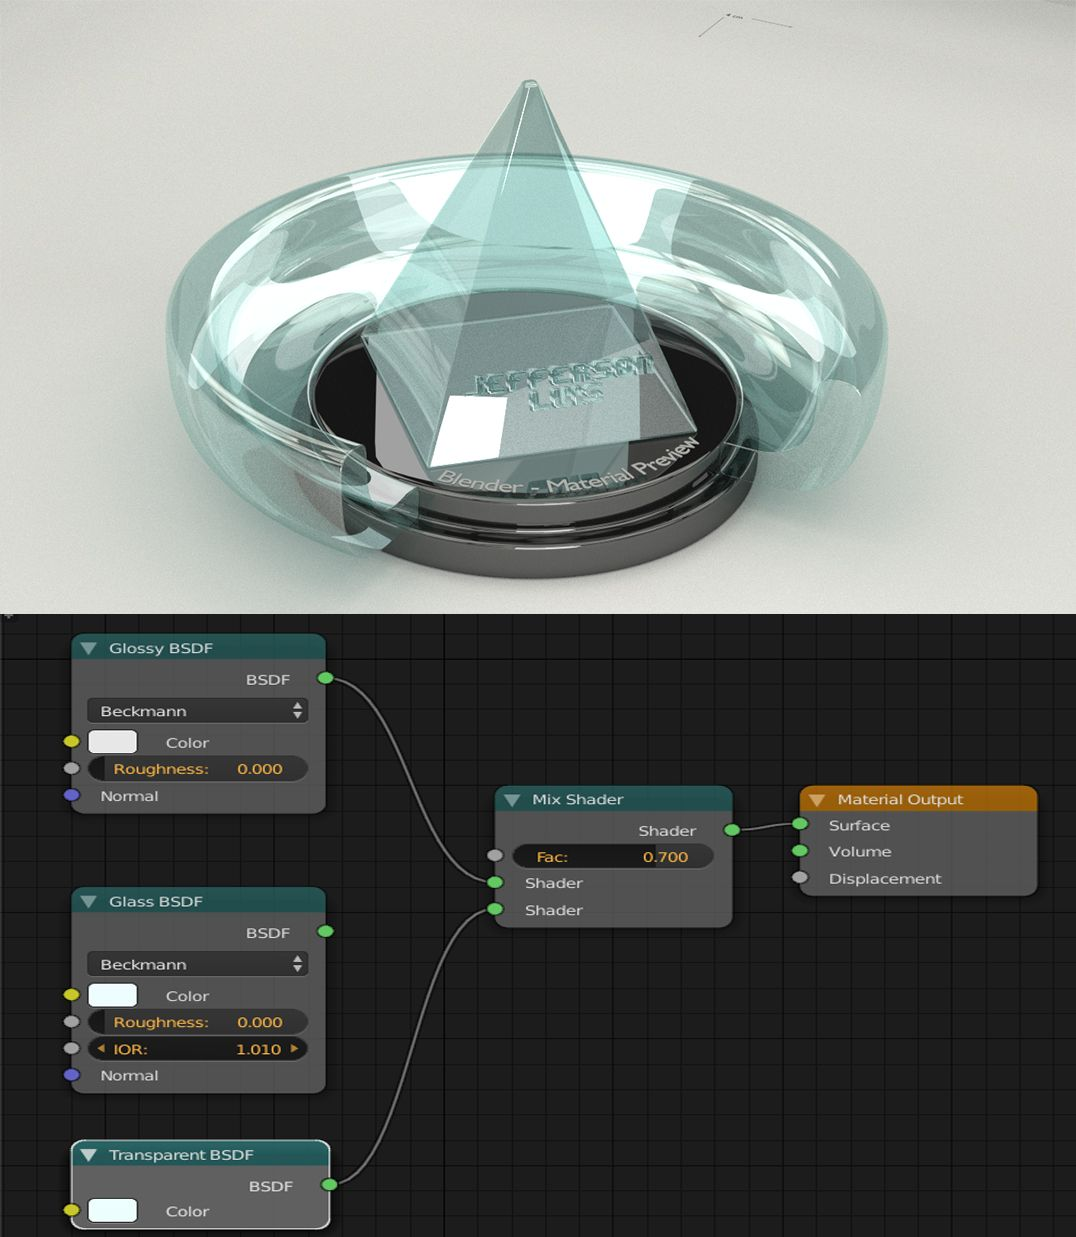 Node Para Criacao De Vidro Com Transparent Bsdf In 2020 Blender 3d Blender Tutorial Blender Models